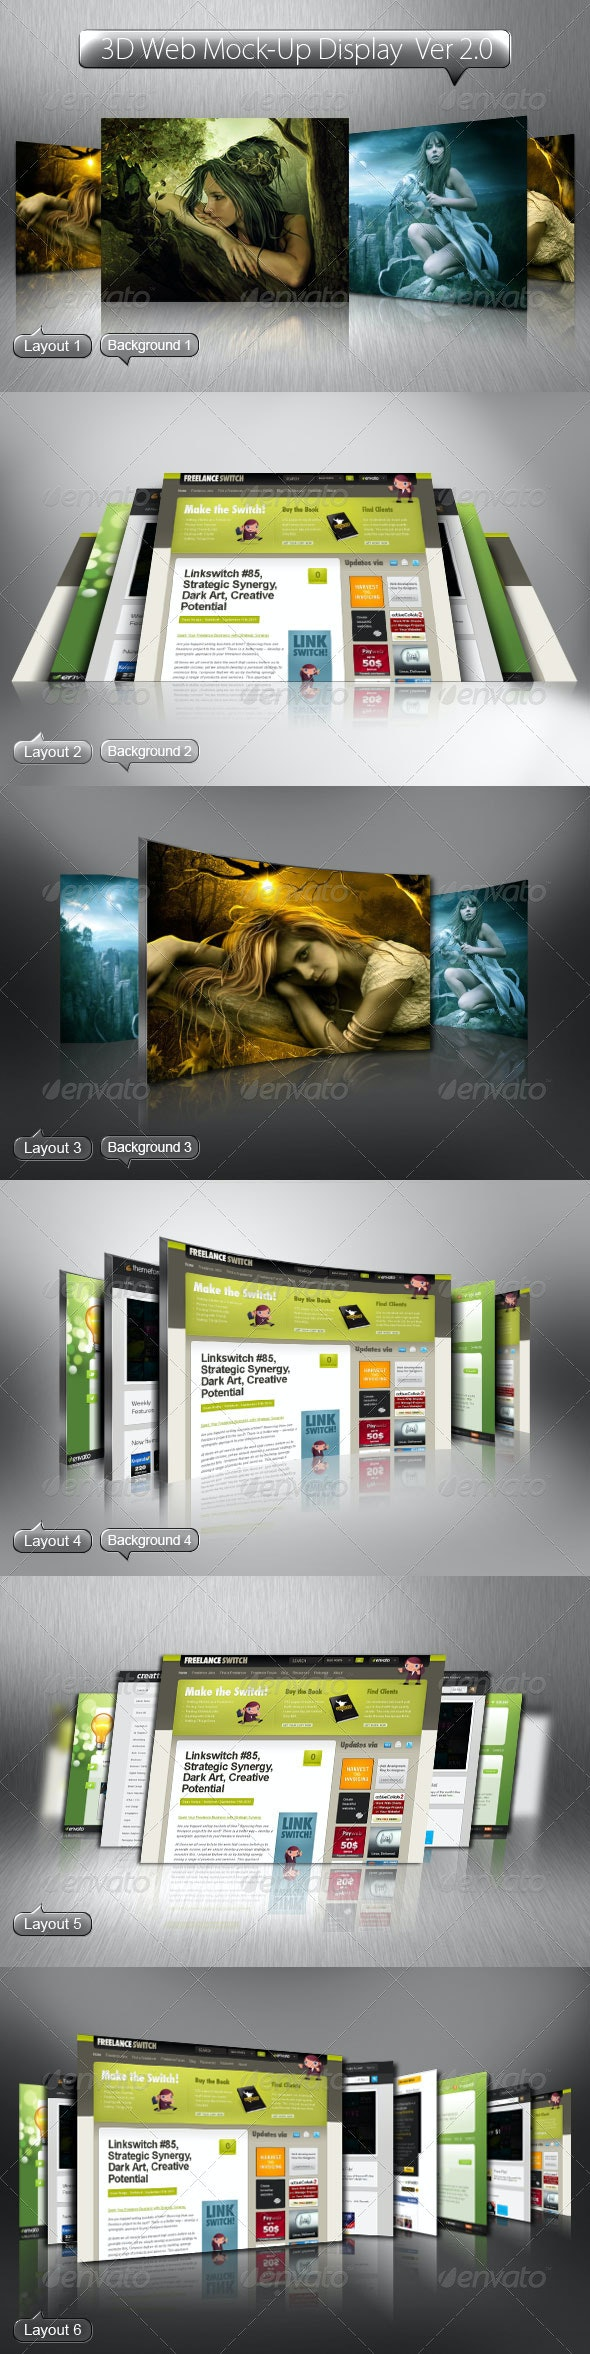 3D Web Mock-Up Display Ver 2.0 - Website Displays